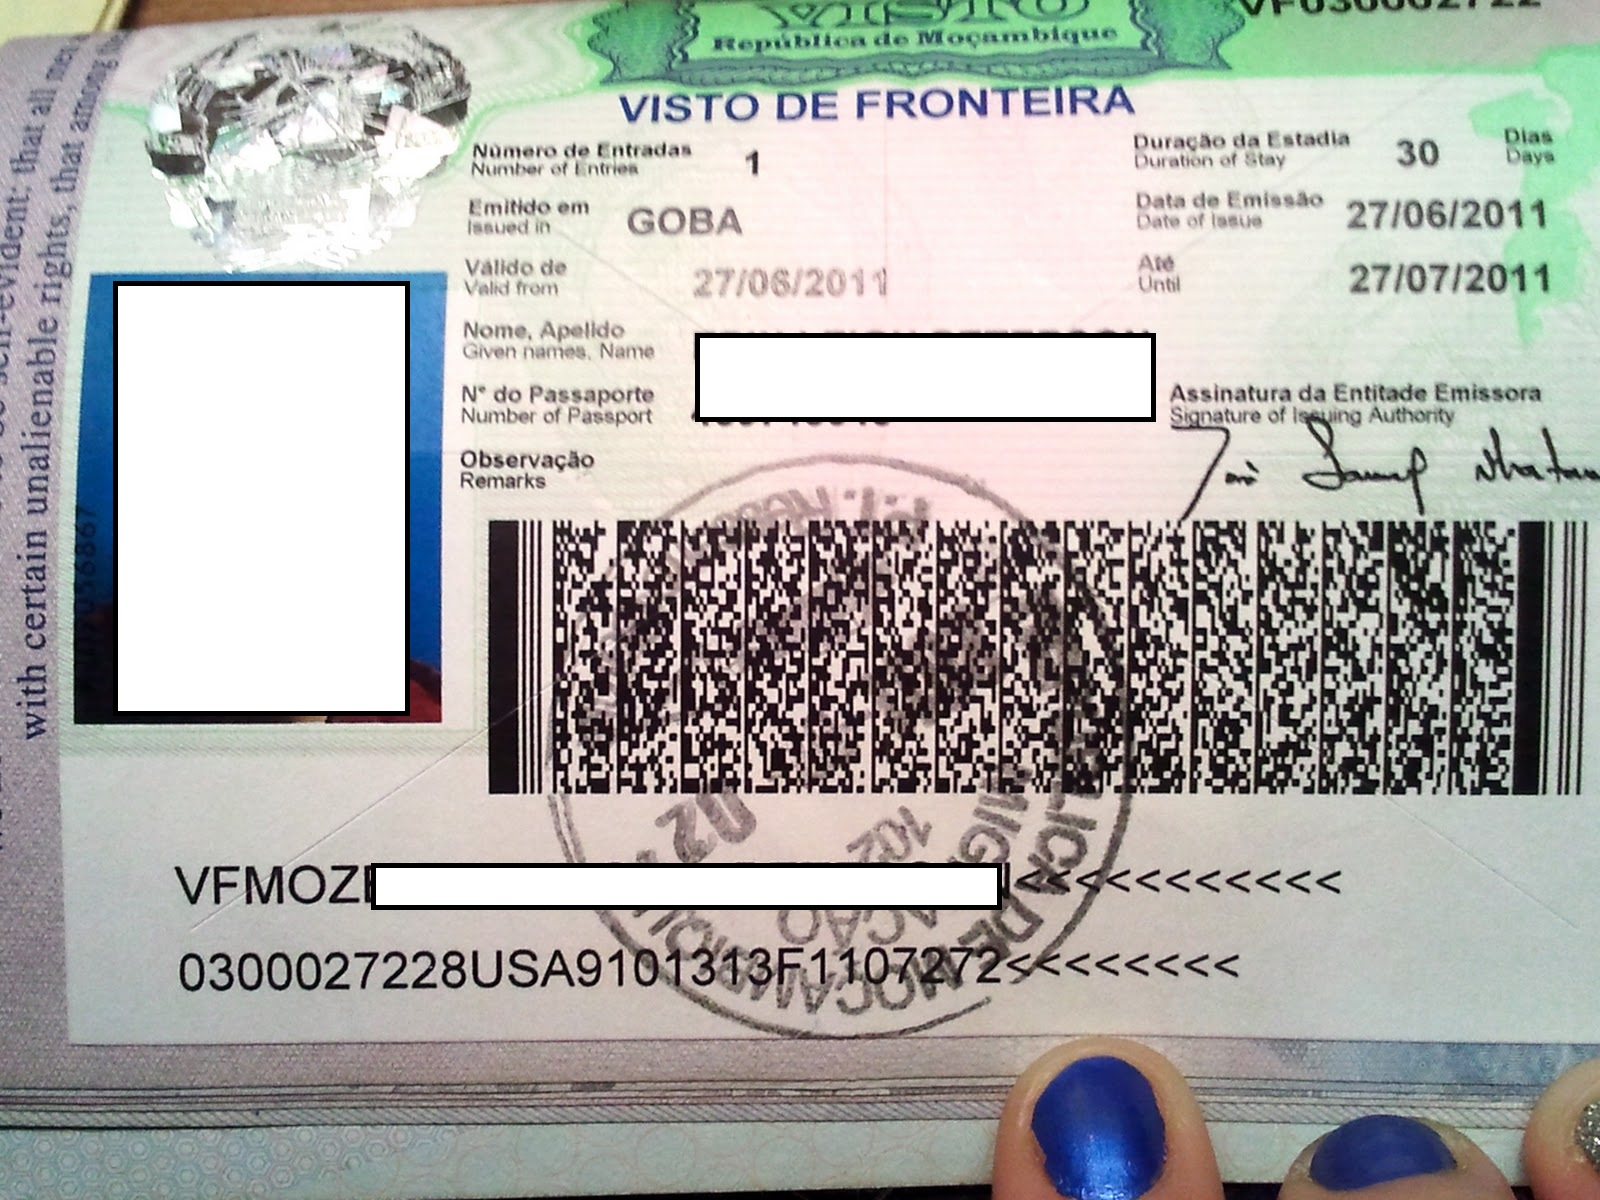 Edited Visto de fronteir border visa Mozambique